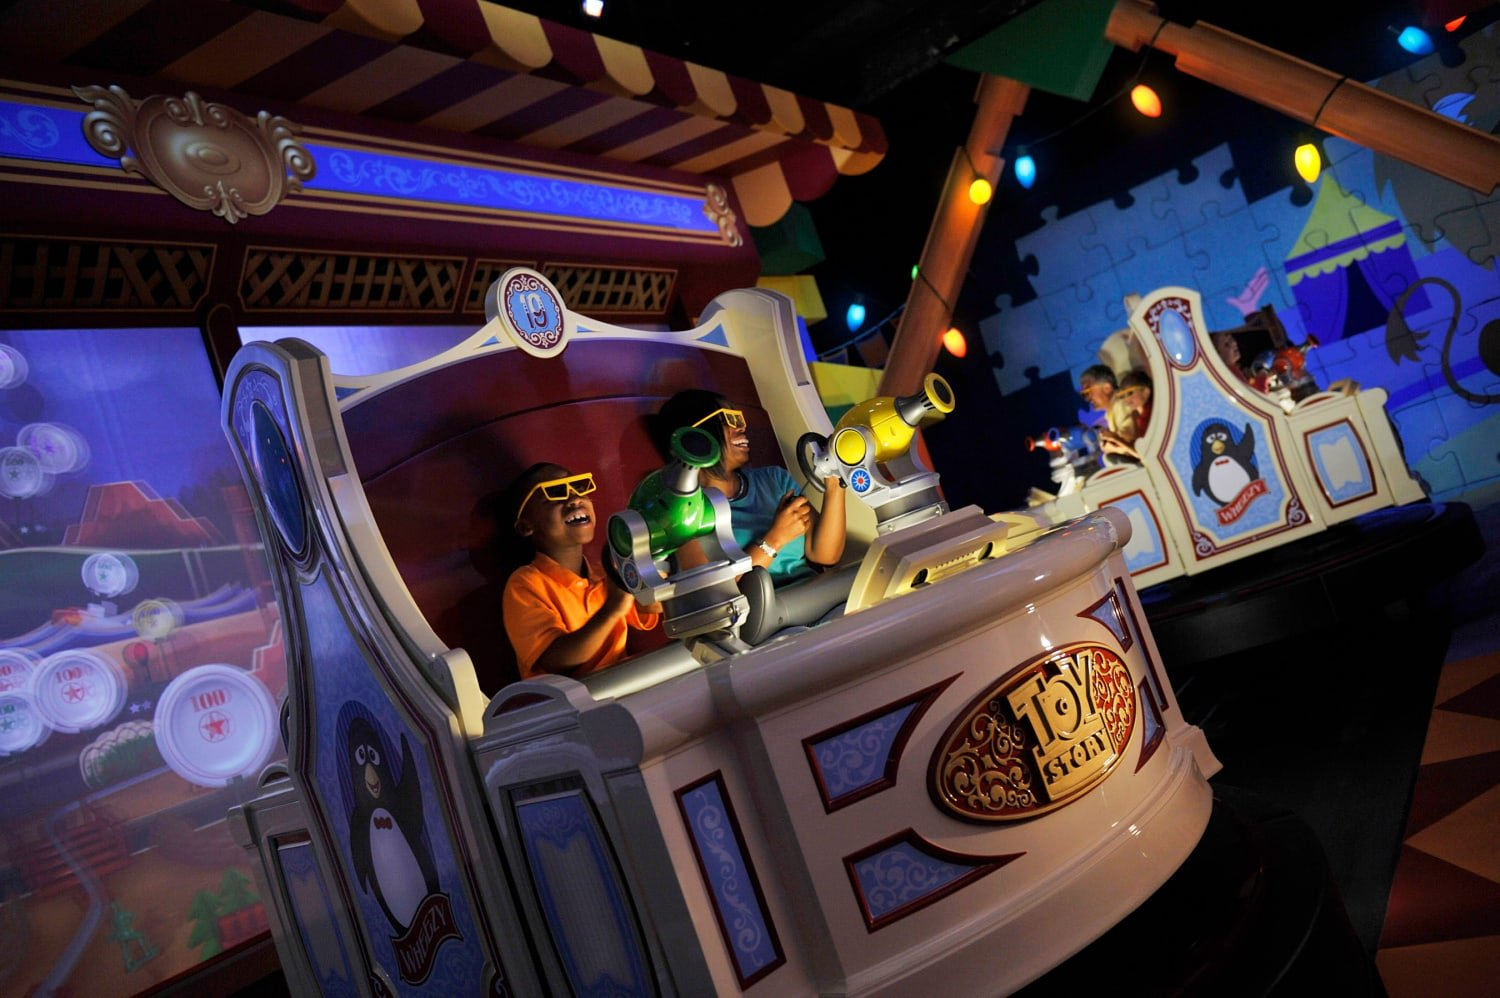 Toy Story Midway Mania at Disney's Hollywood Studios with Preschoolers